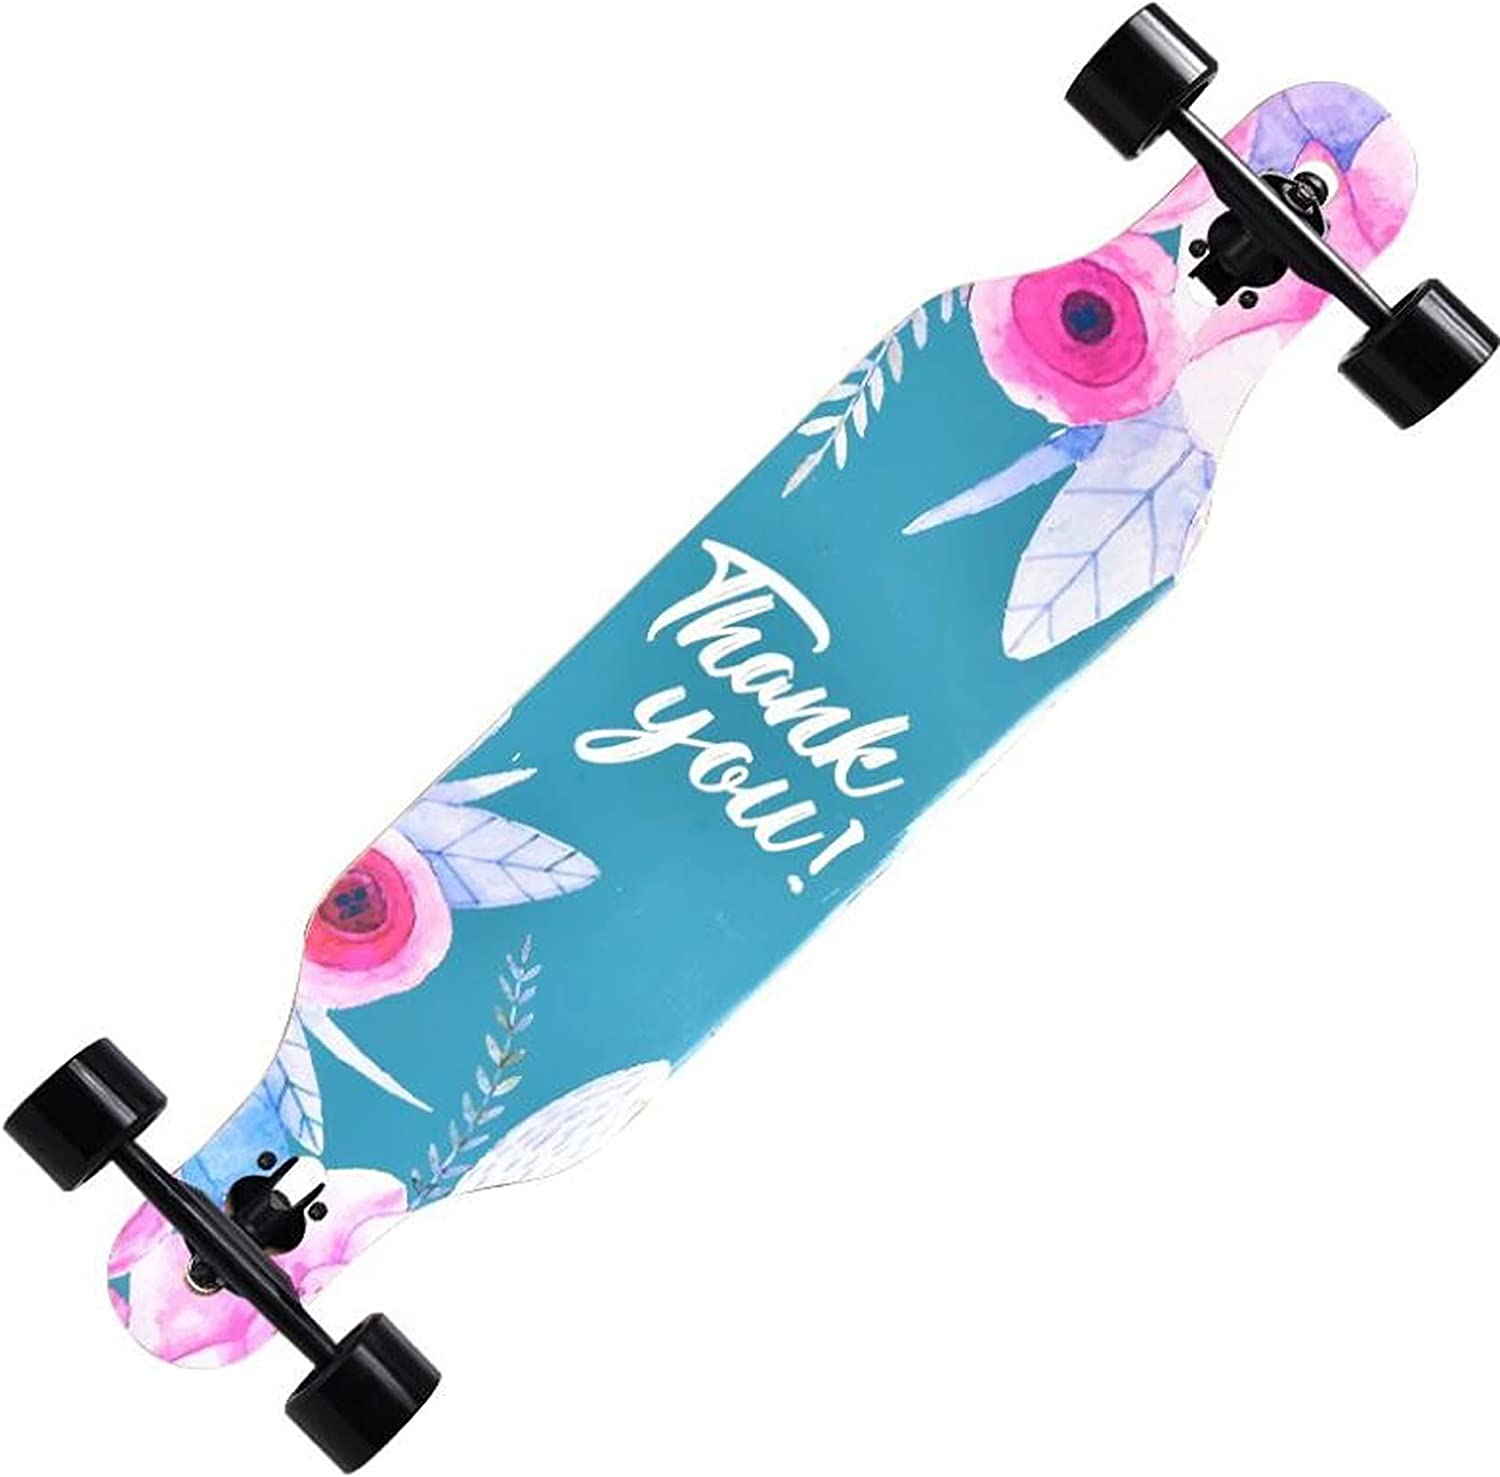 MTDHKX Limited time for free shipping Longboard Skateboard 42 inch Complete San Francisco Mall Through Deck M Drop